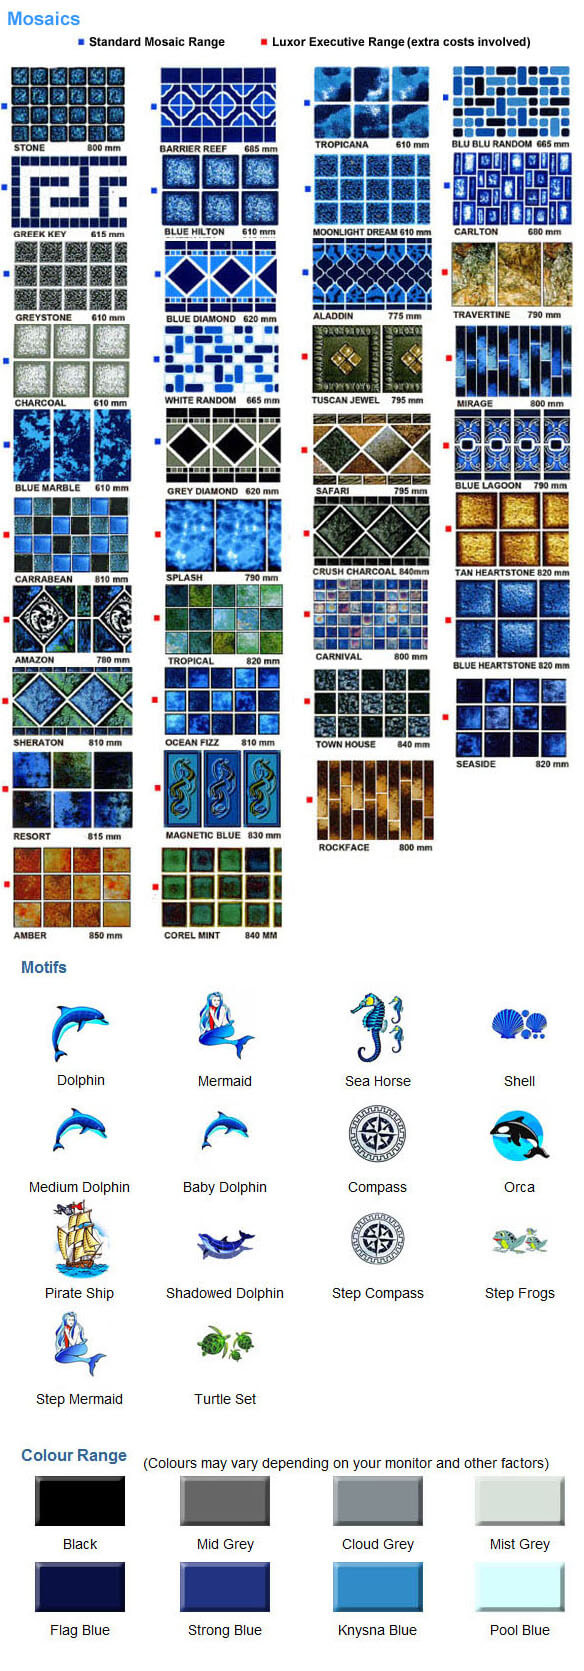 Swimming Pool Mosaics, Motifs and Colours